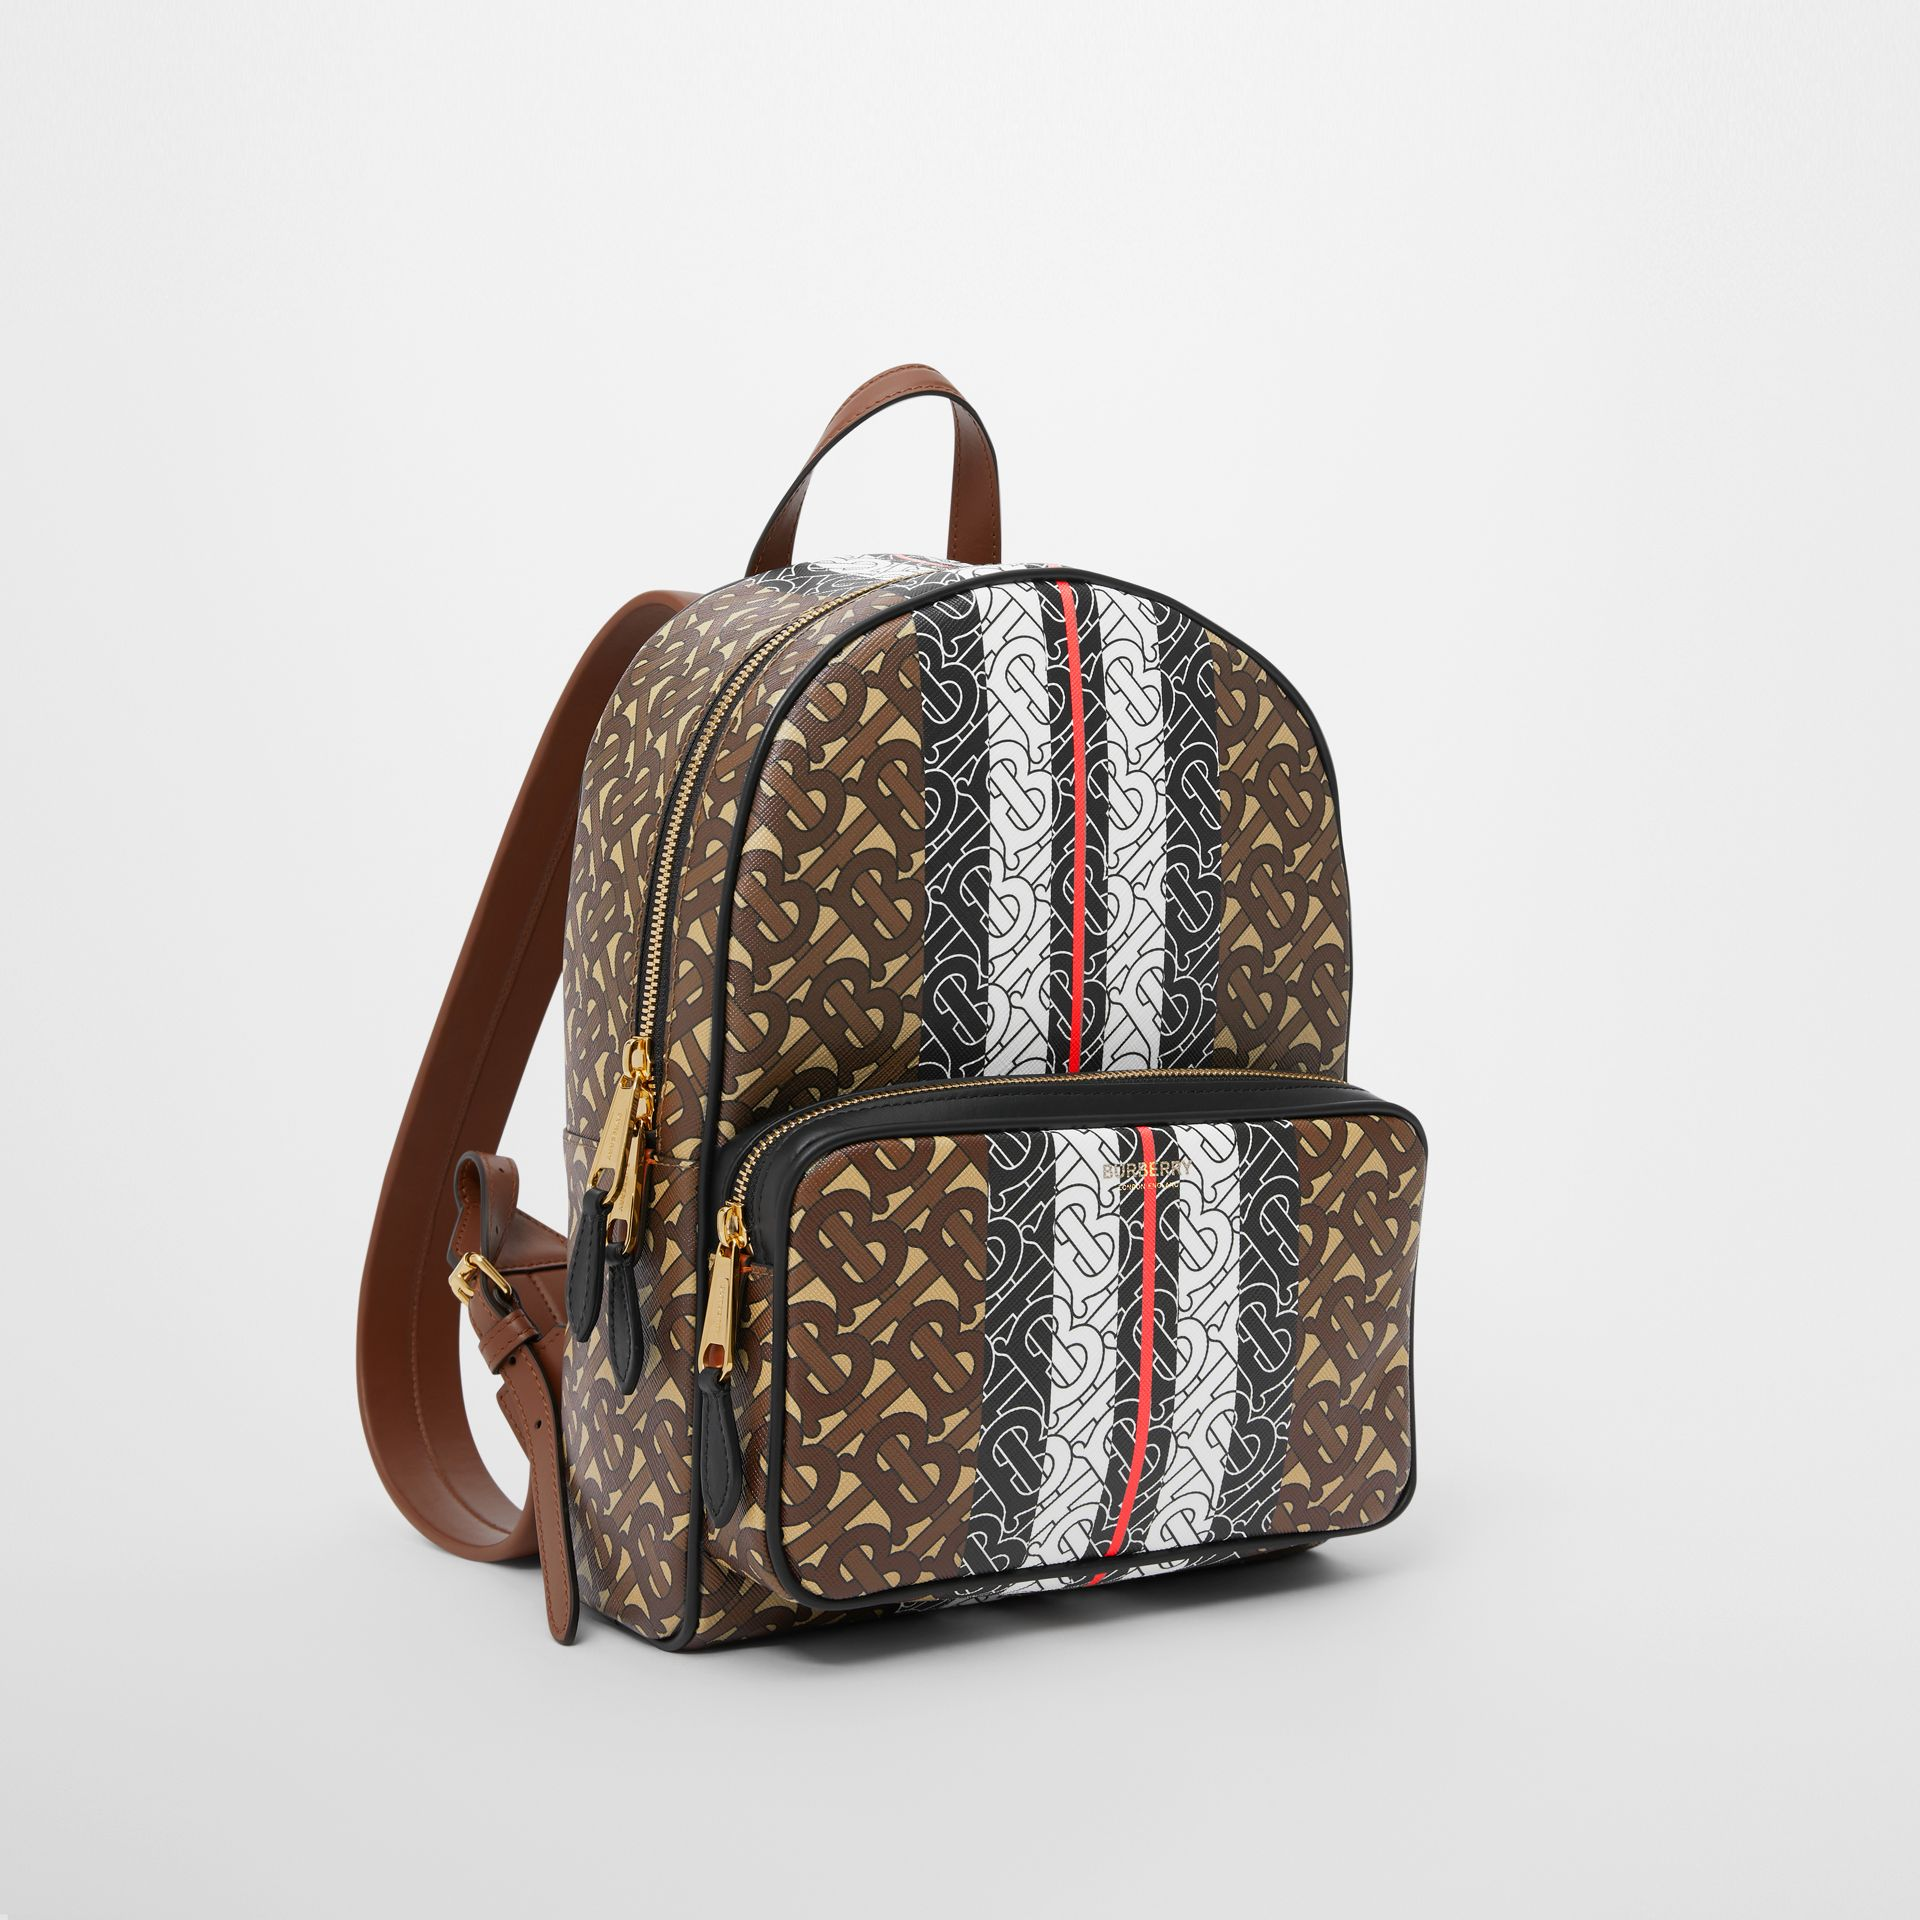 Monogram Stripe Print E-canvas Backpack in Bridle Brown - Women | Burberry United Kingdom - gallery image 4